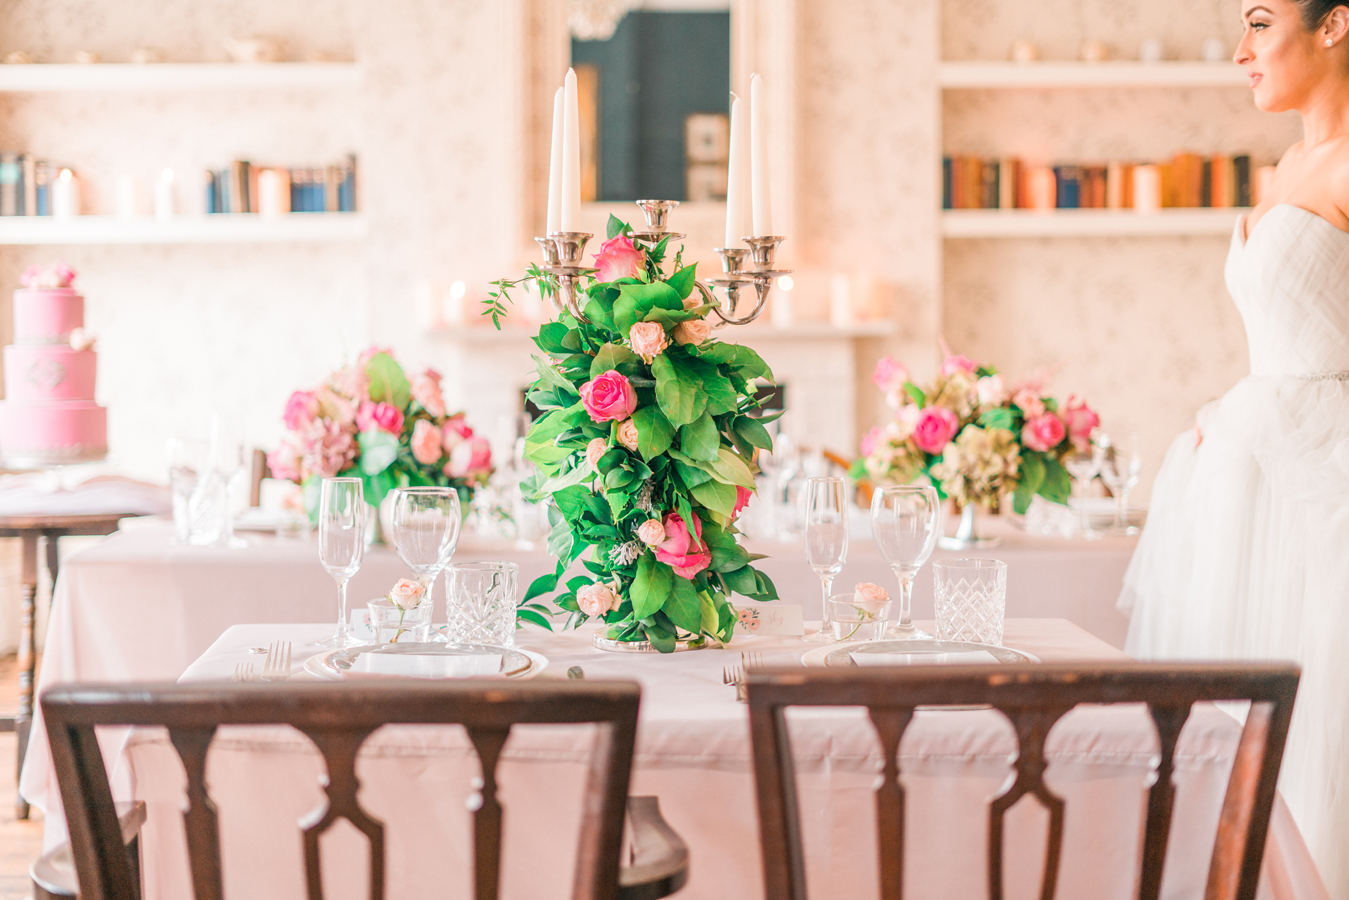 Beautiful wedding table setting and Candelabra